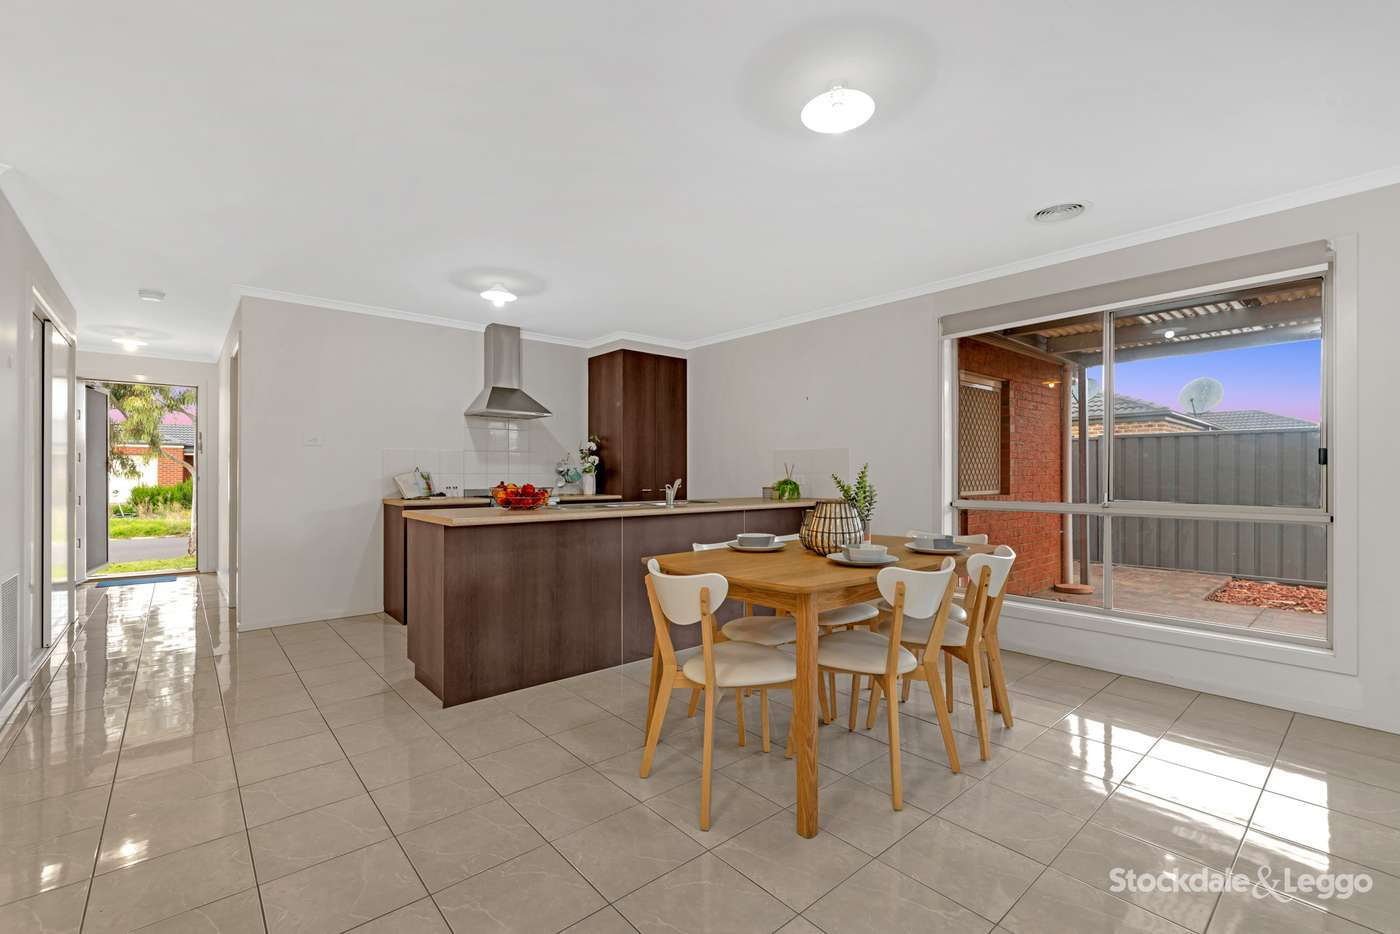 Sixth view of Homely house listing, 3 Weavers Street, Manor Lakes VIC 3024